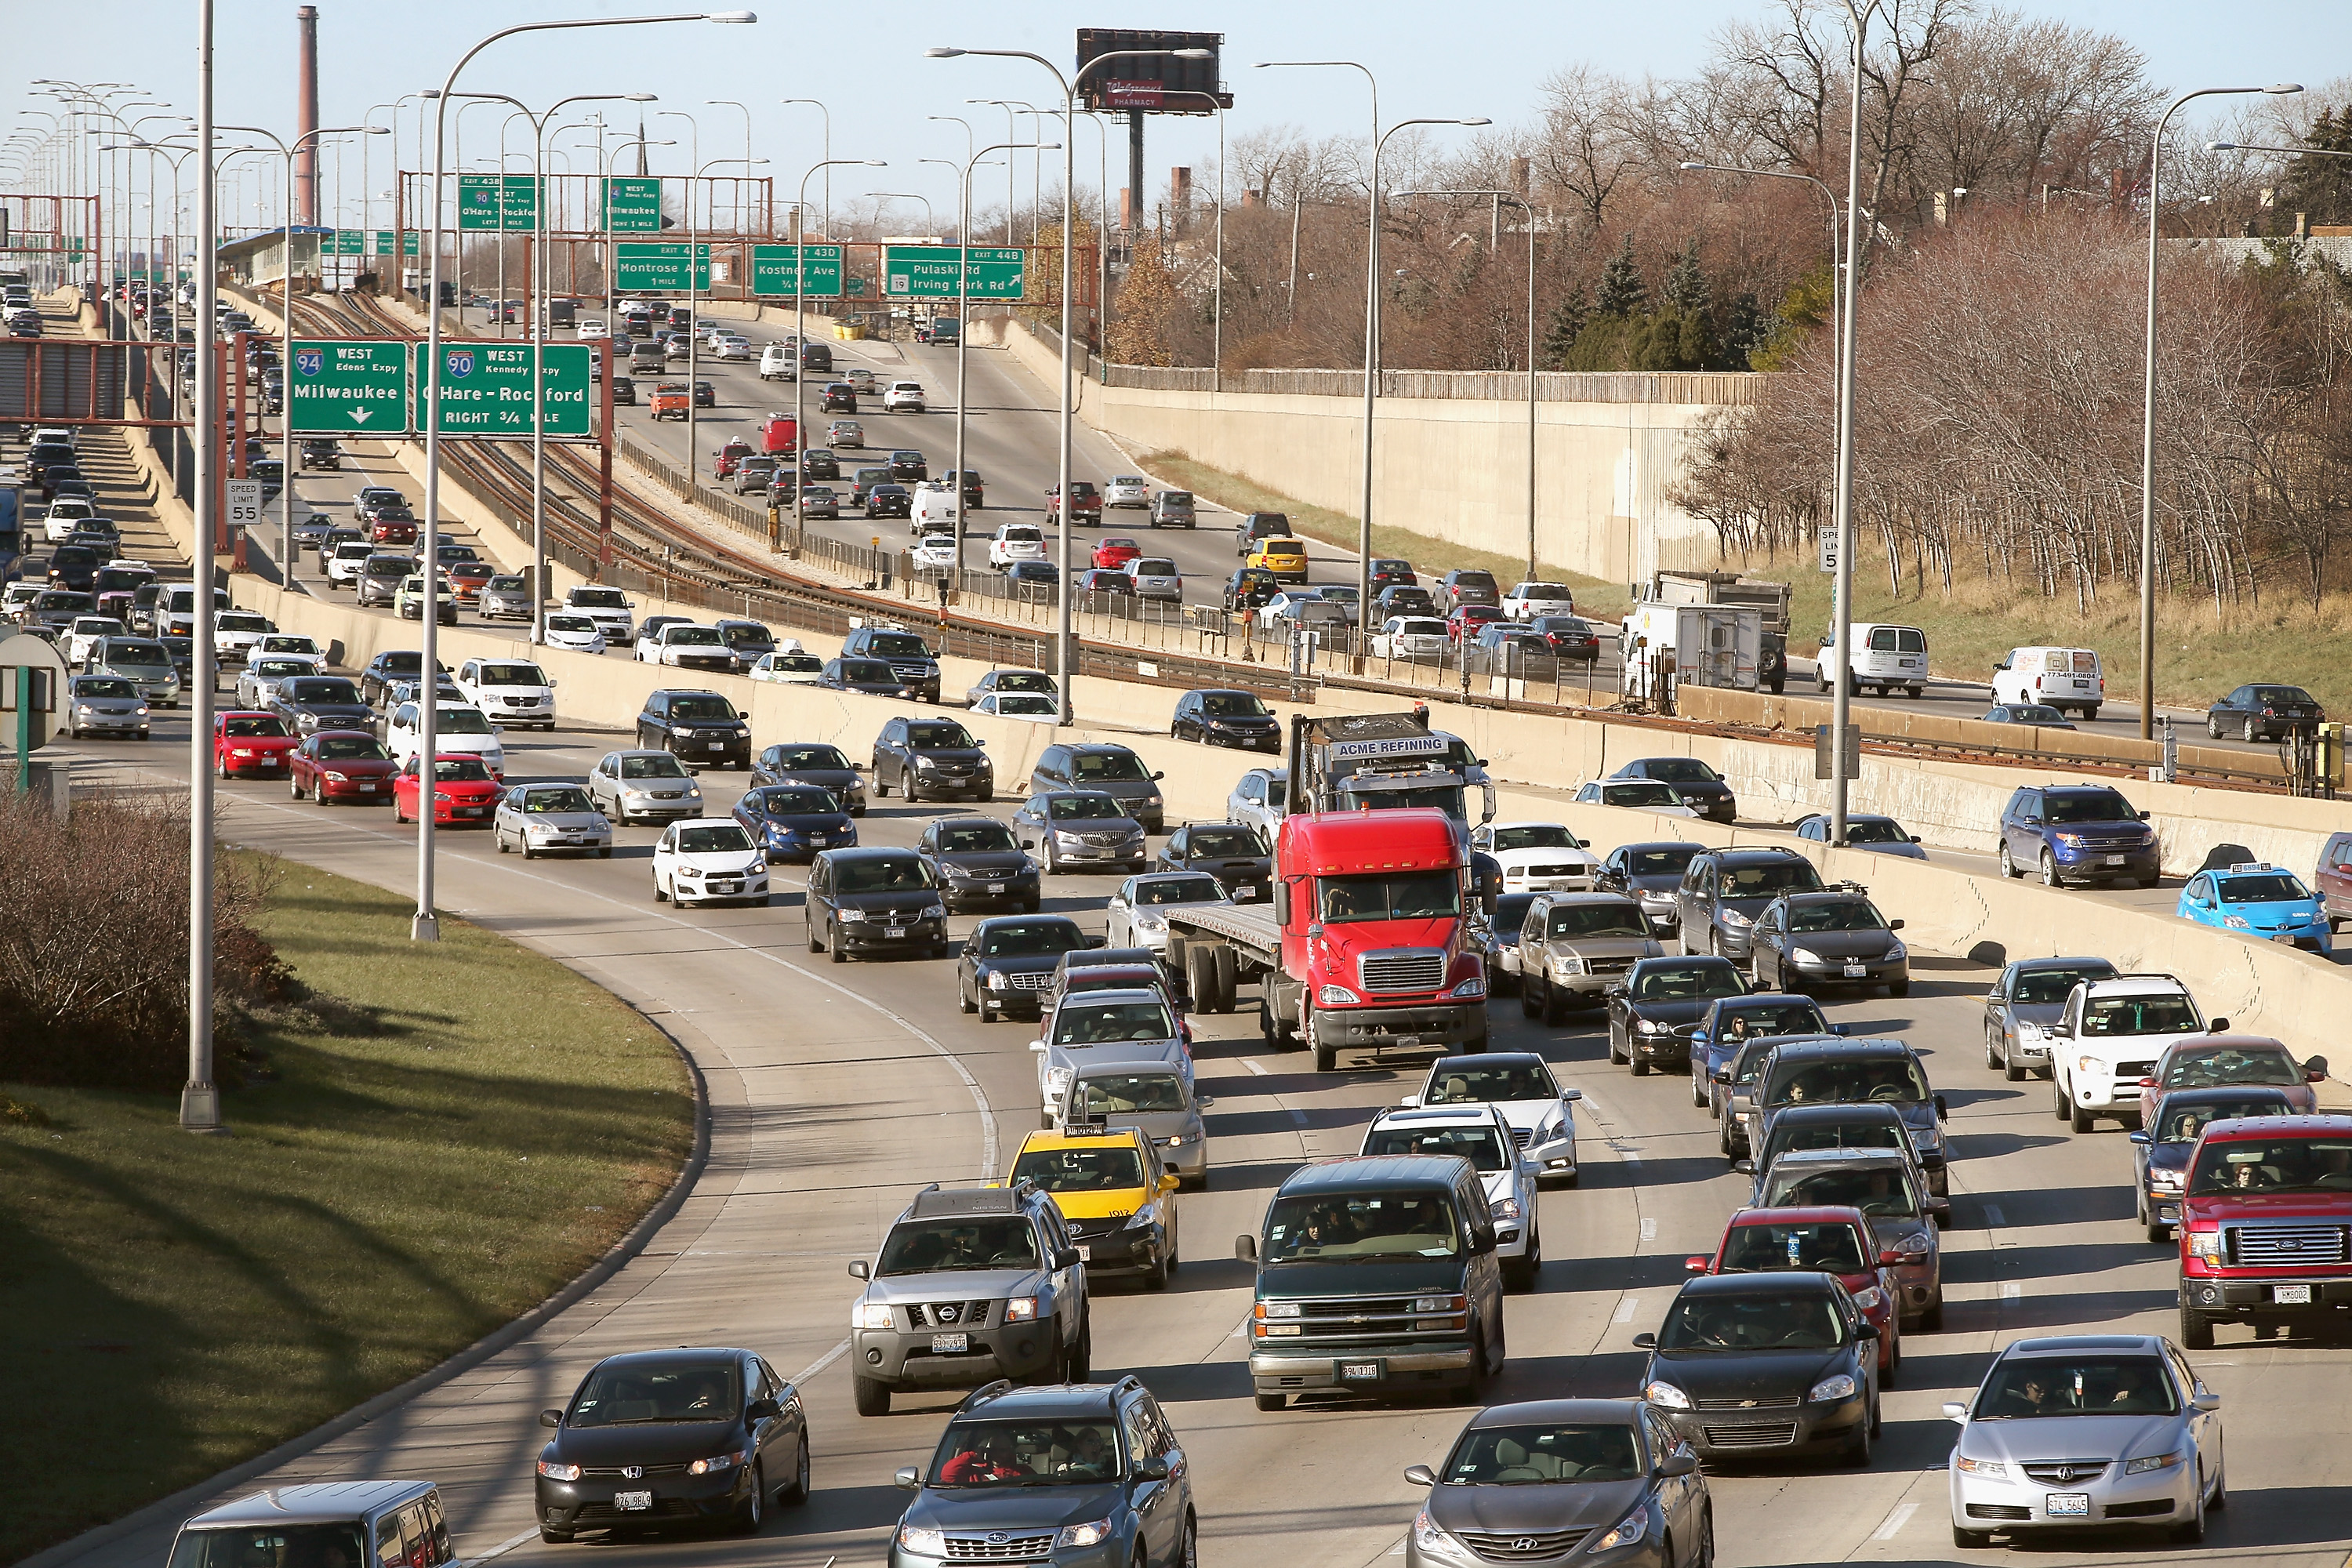 How Should America Fund Its Highways in the 21st Century?